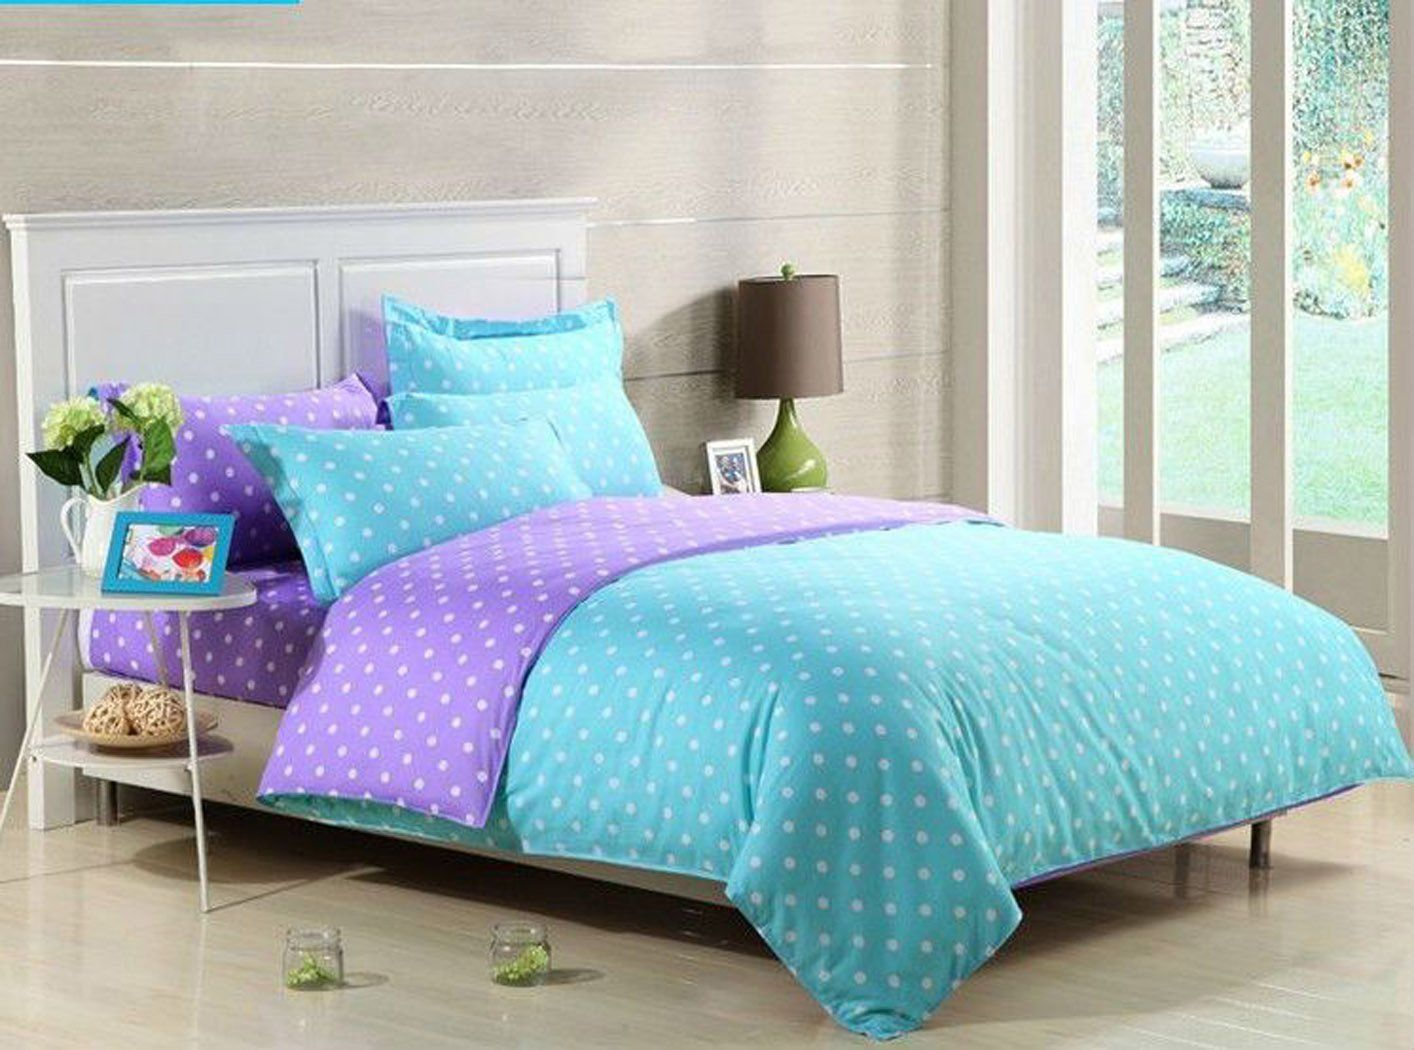 Light blue bedding for girls - Bedroom Sets For Teenage Girls Blue Inspiration 54729 Ideas